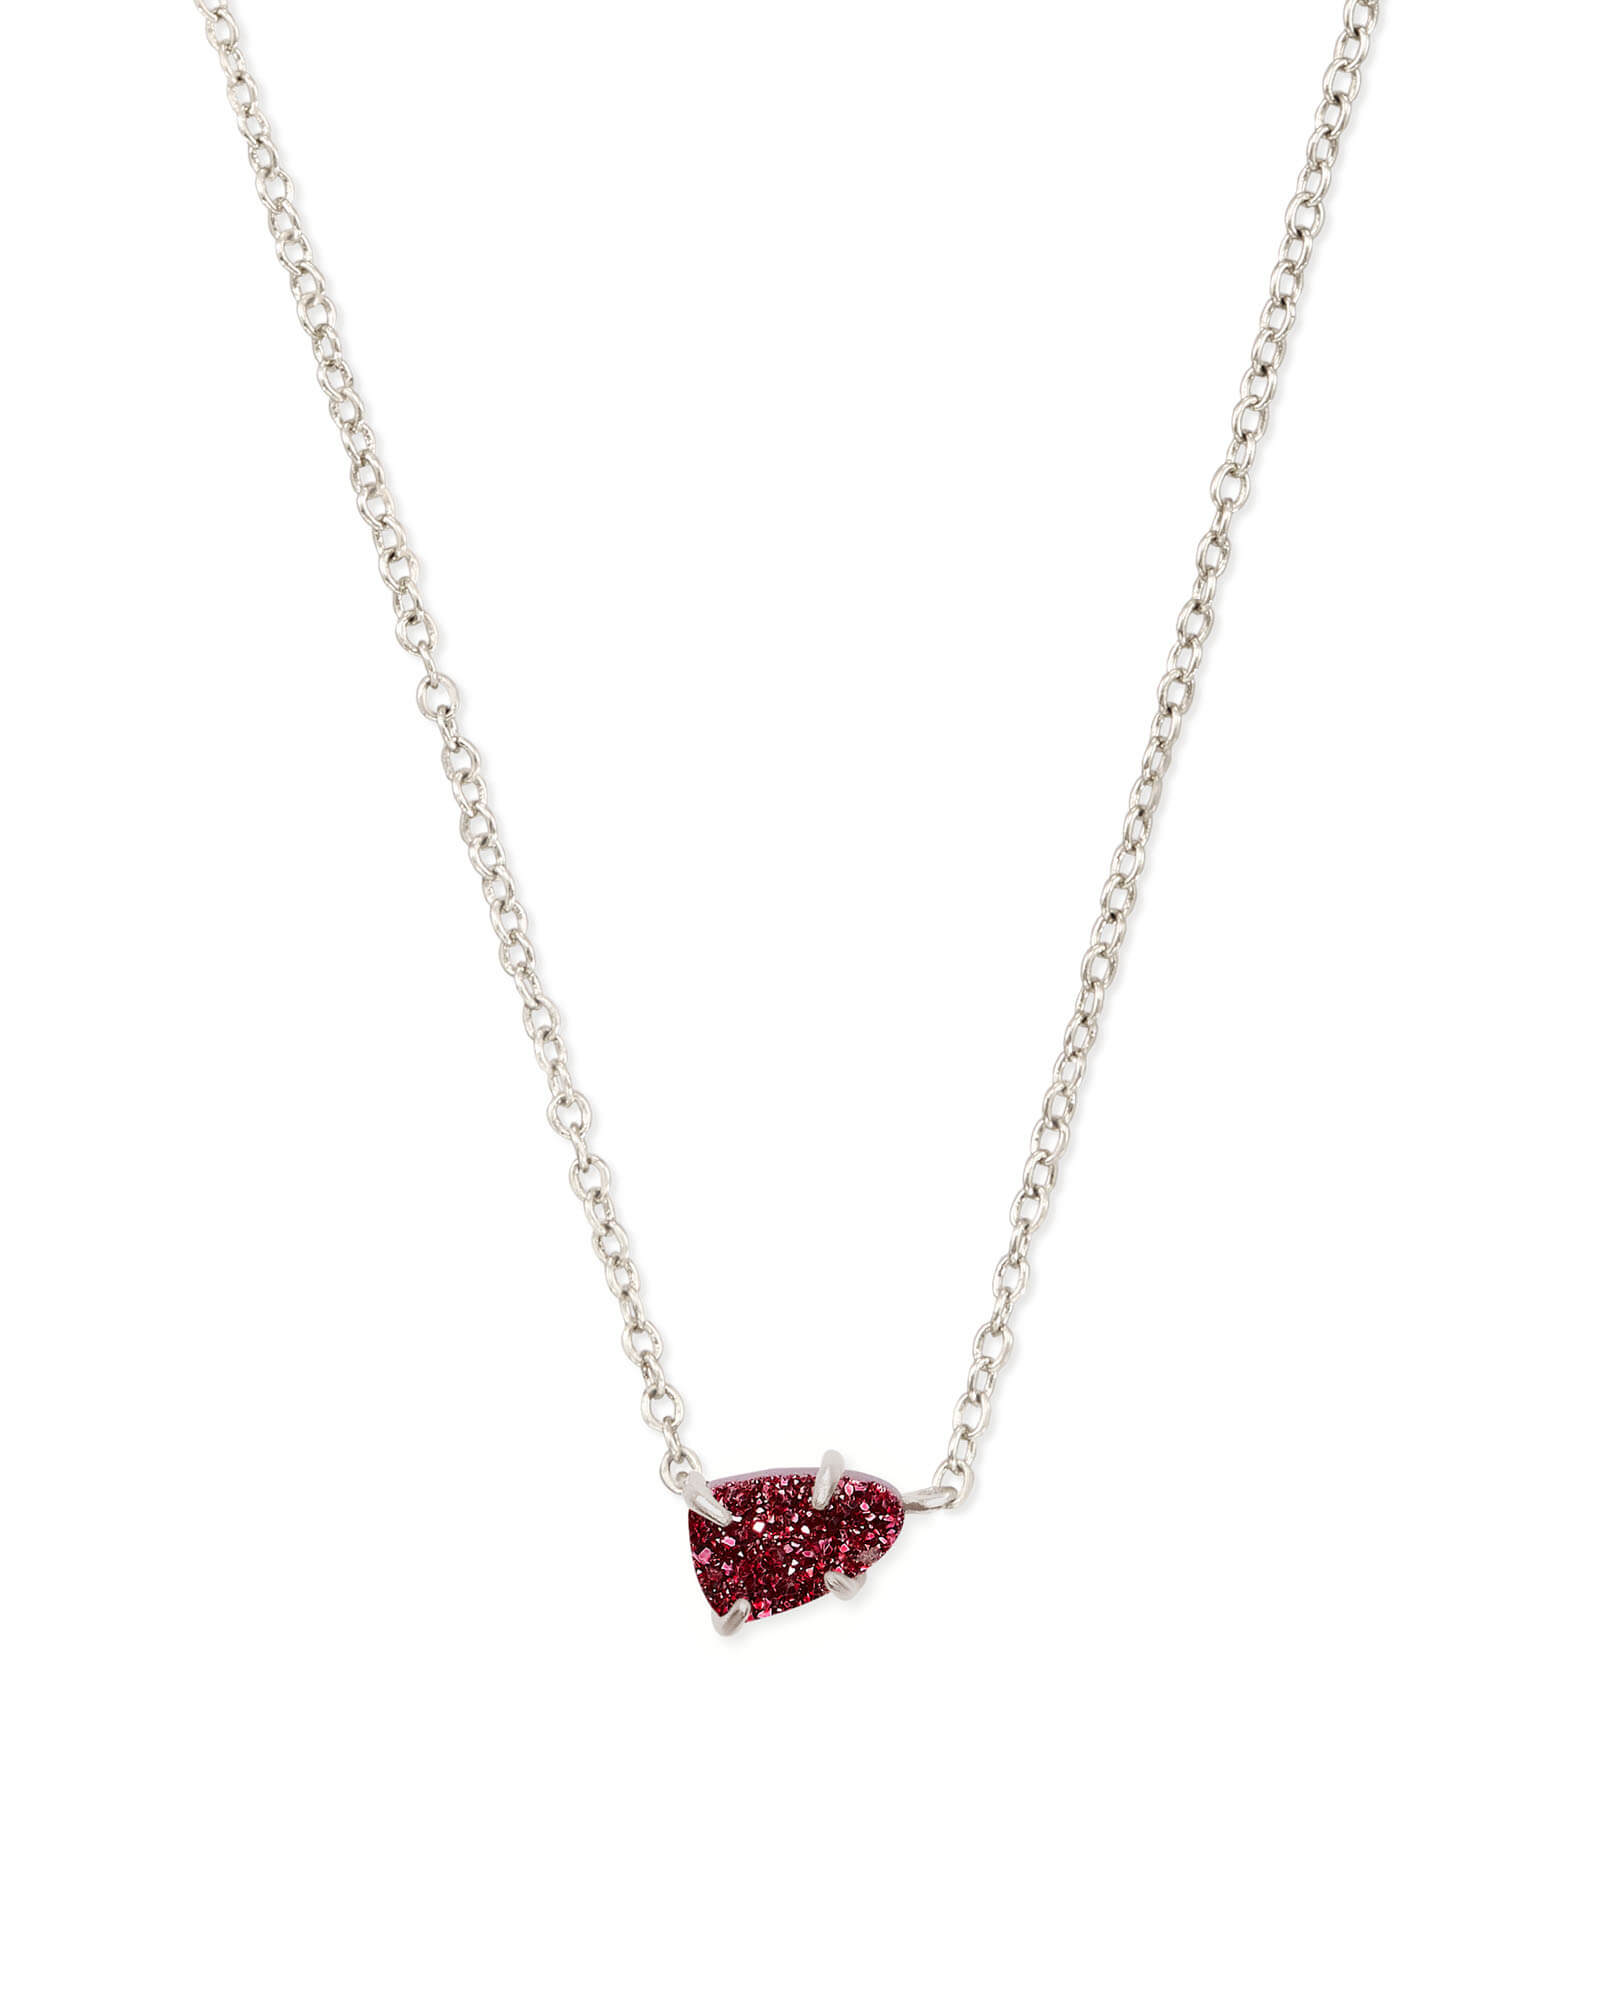 Helga Silver Pendant Necklace in Maroon Drusy